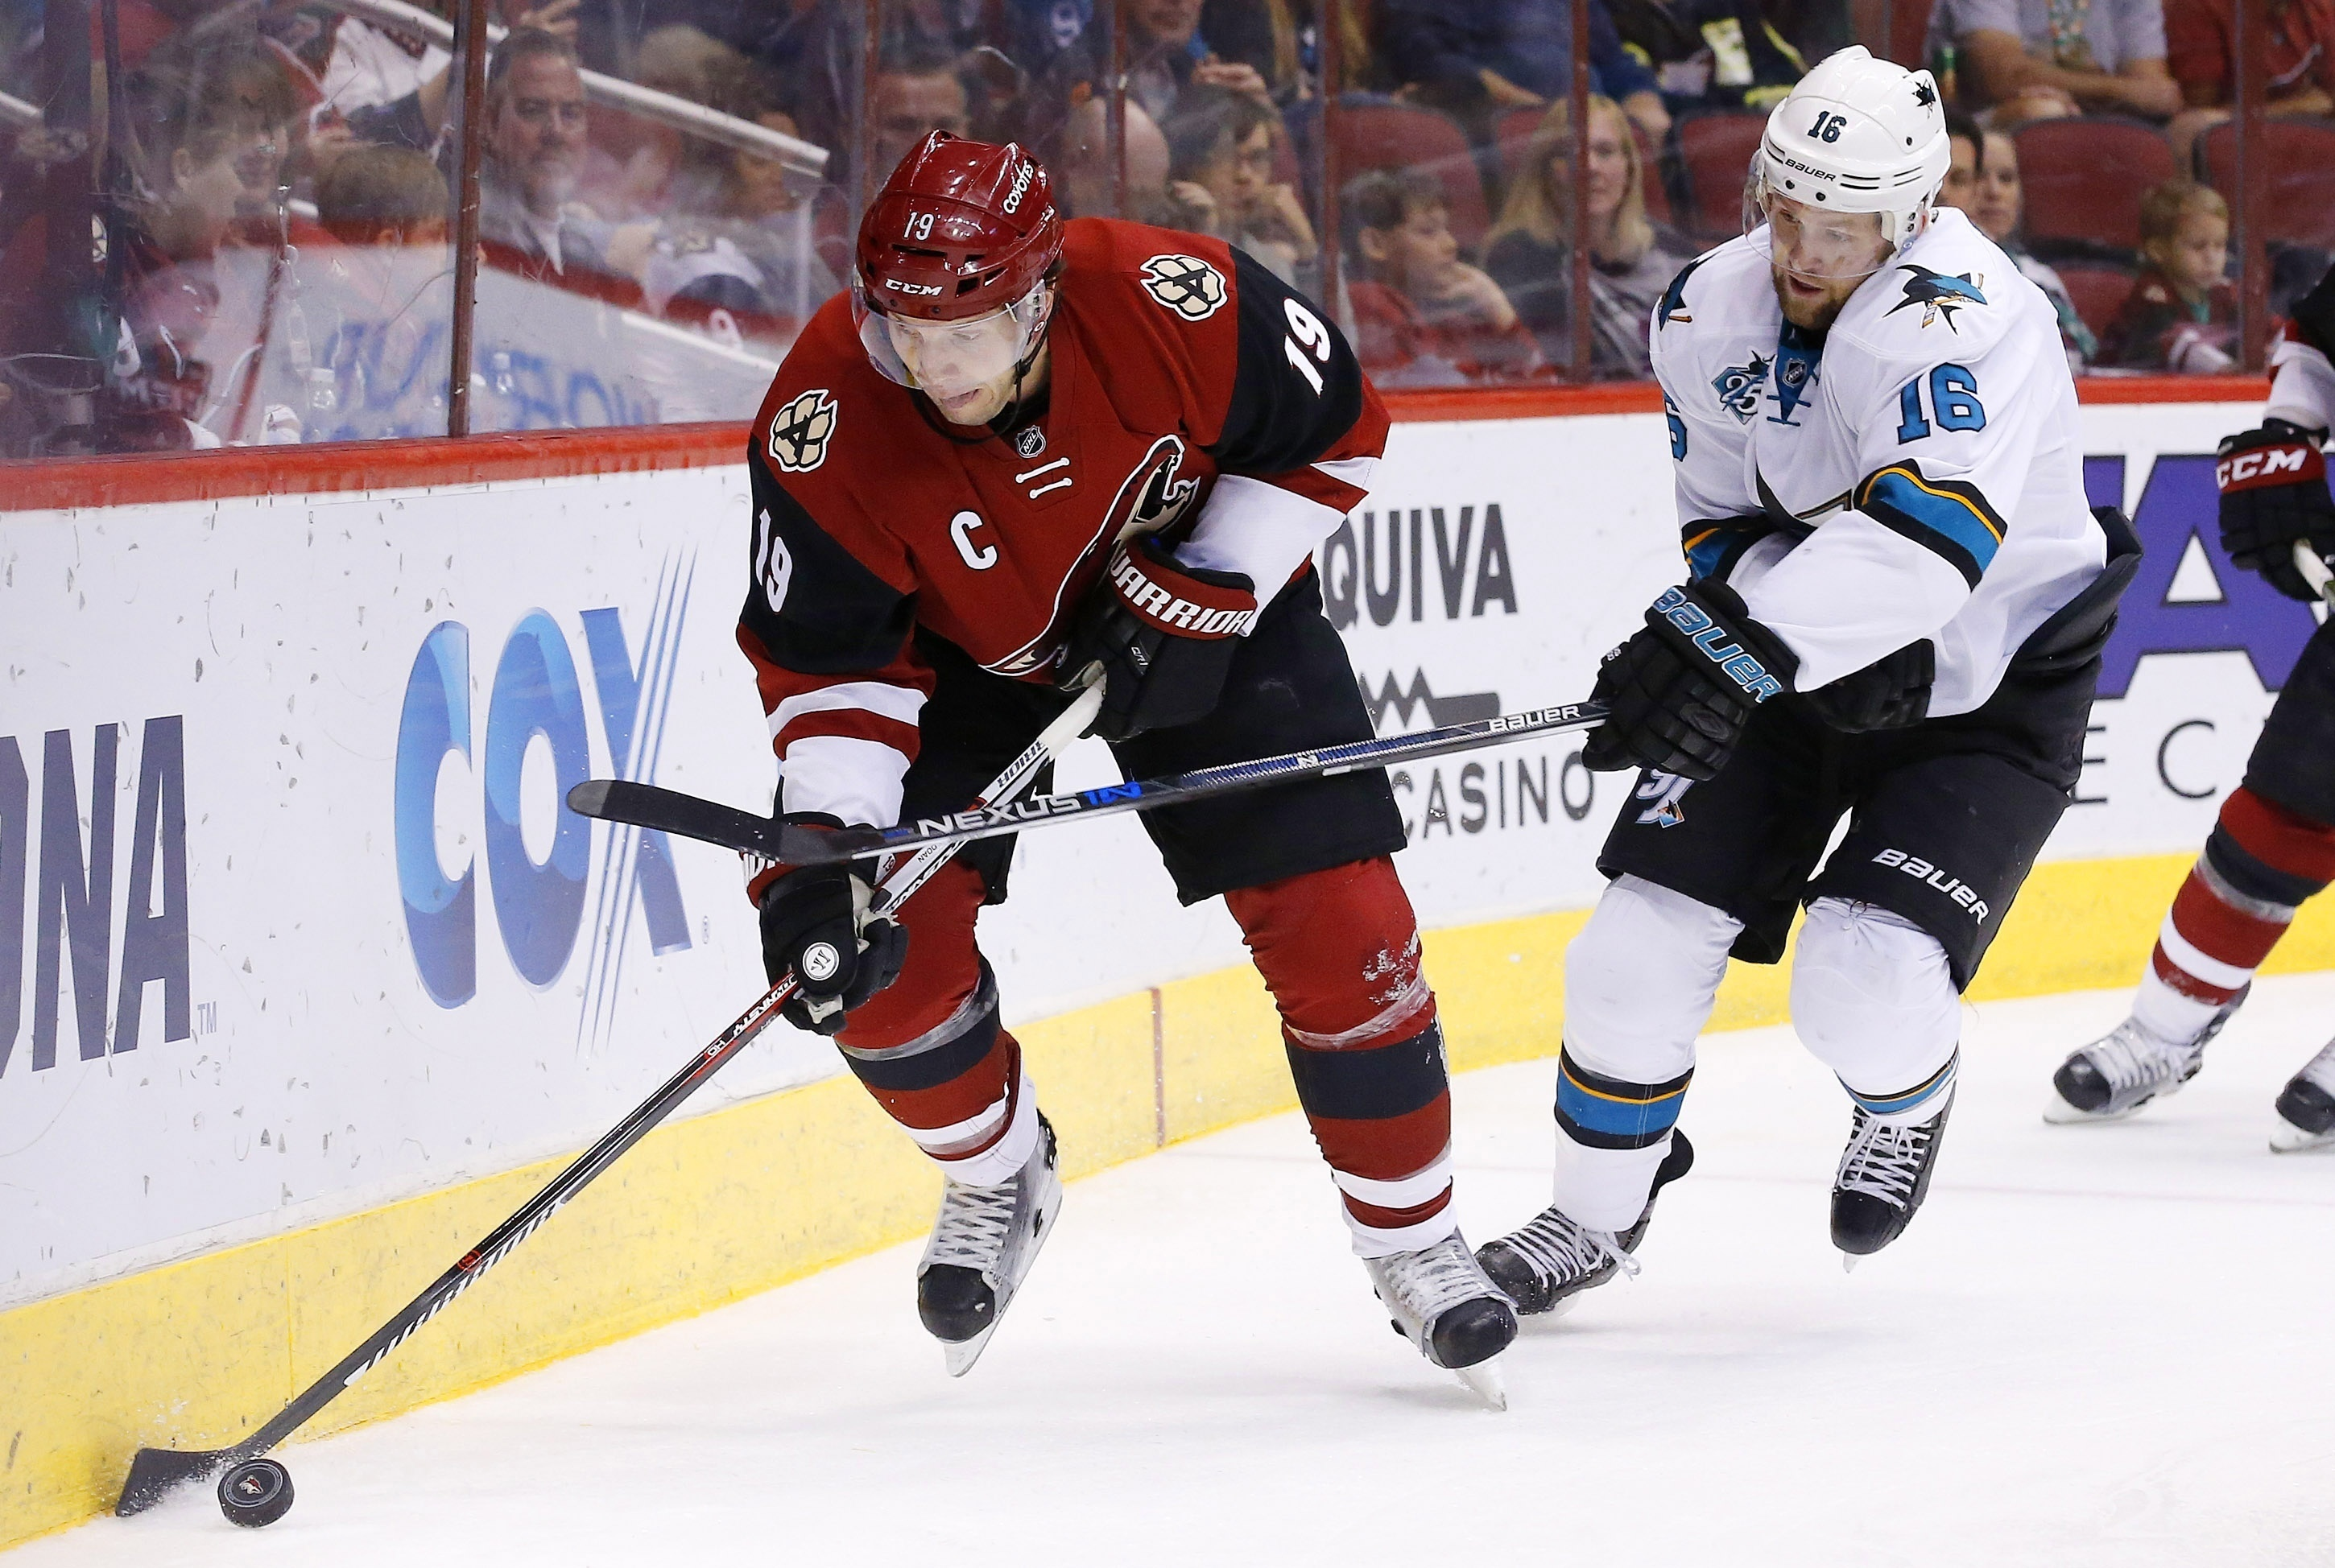 Arizona Coyotes' Shane Doan (19) tries to skate with the puck as San Jose Sharks' Nick Spaling (16) arrives to hit Doan with his stick during the first period of an NHL hockey game Thursday, March 17, 2016, in Glendale, Ariz. (AP Photo/Ross D. Franklin)